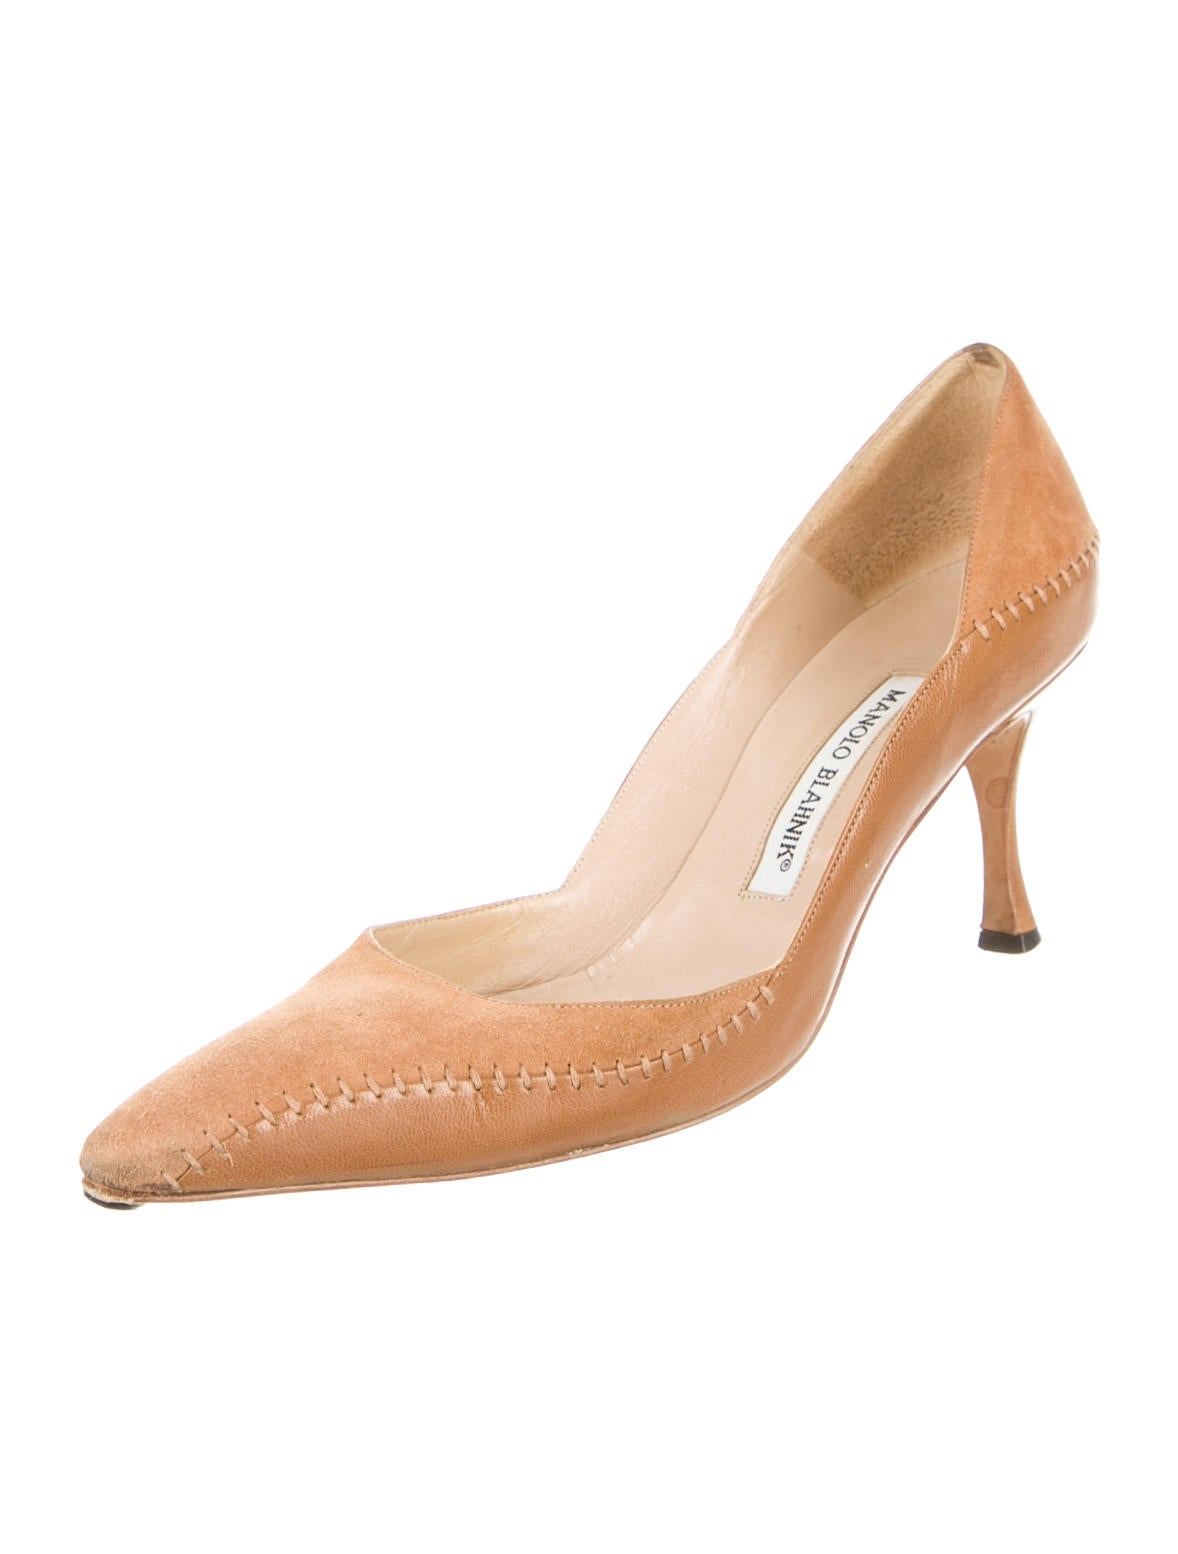 Manolo blahnik pumps shoes moo35908 the realreal for Shoes by manolo blahnik